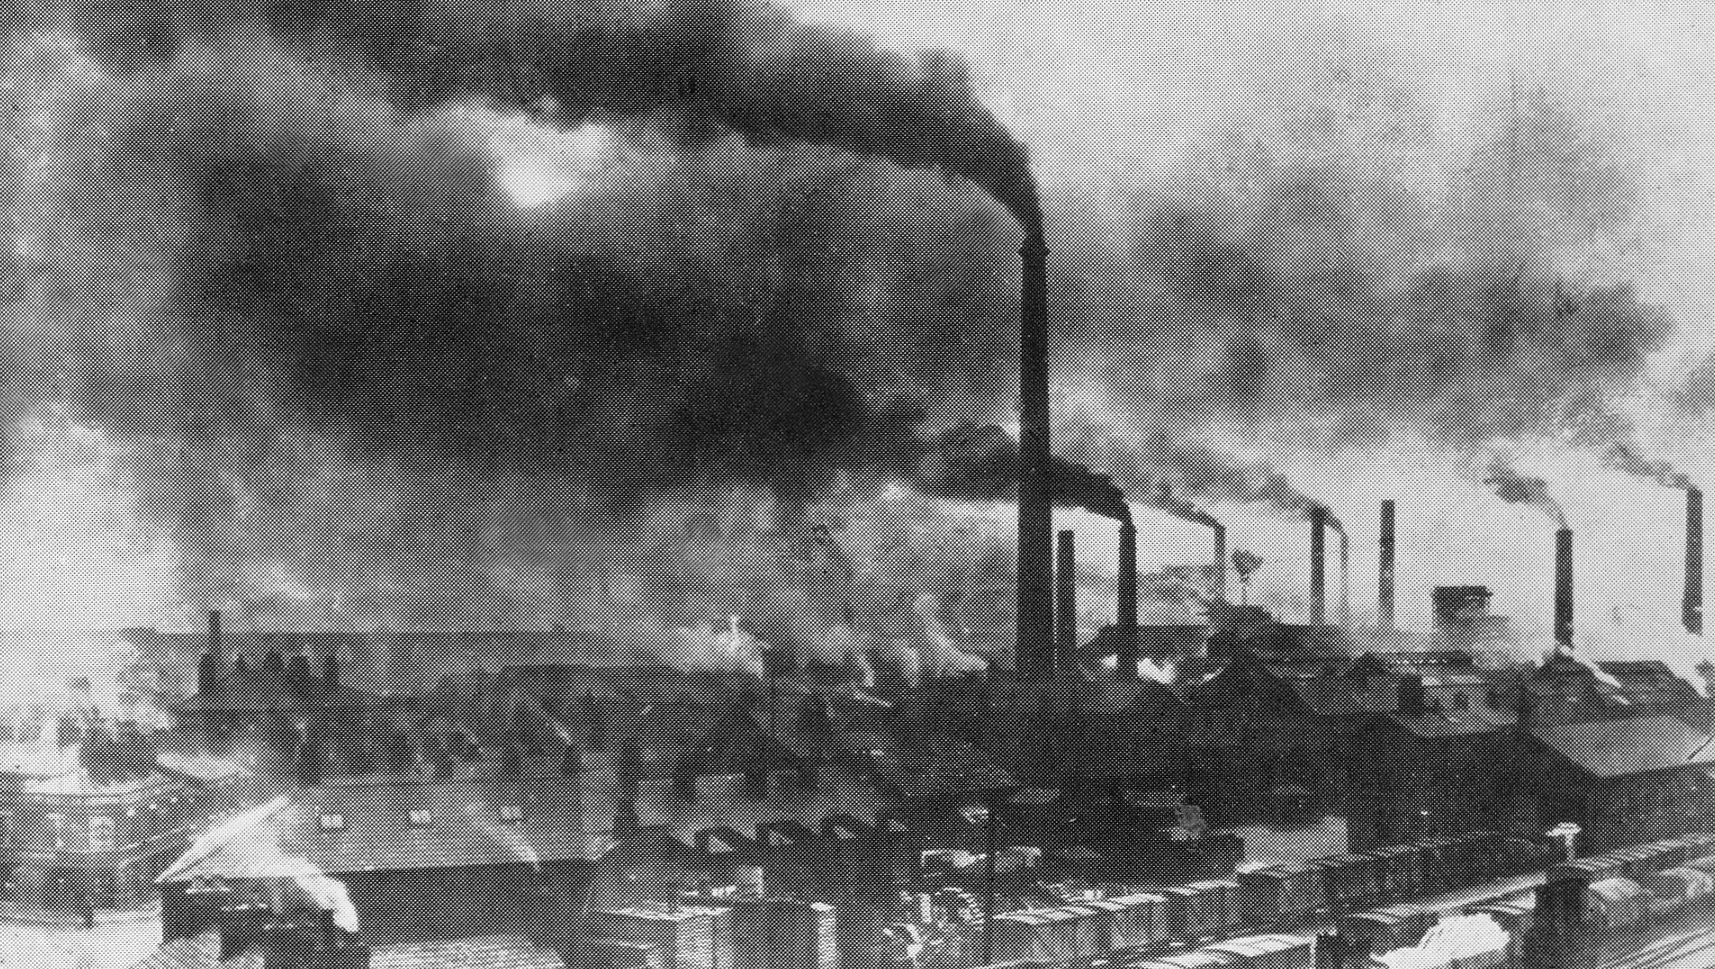 industrialization in the united states in the late nineteenth century Cities of the late nineteenth century grew without planning, with a minimum of control, and typically by the dictates of industrial enterprise us cities seemed to harbor all the afflictions that plague modern society: poverty, disease, crime, and decay.